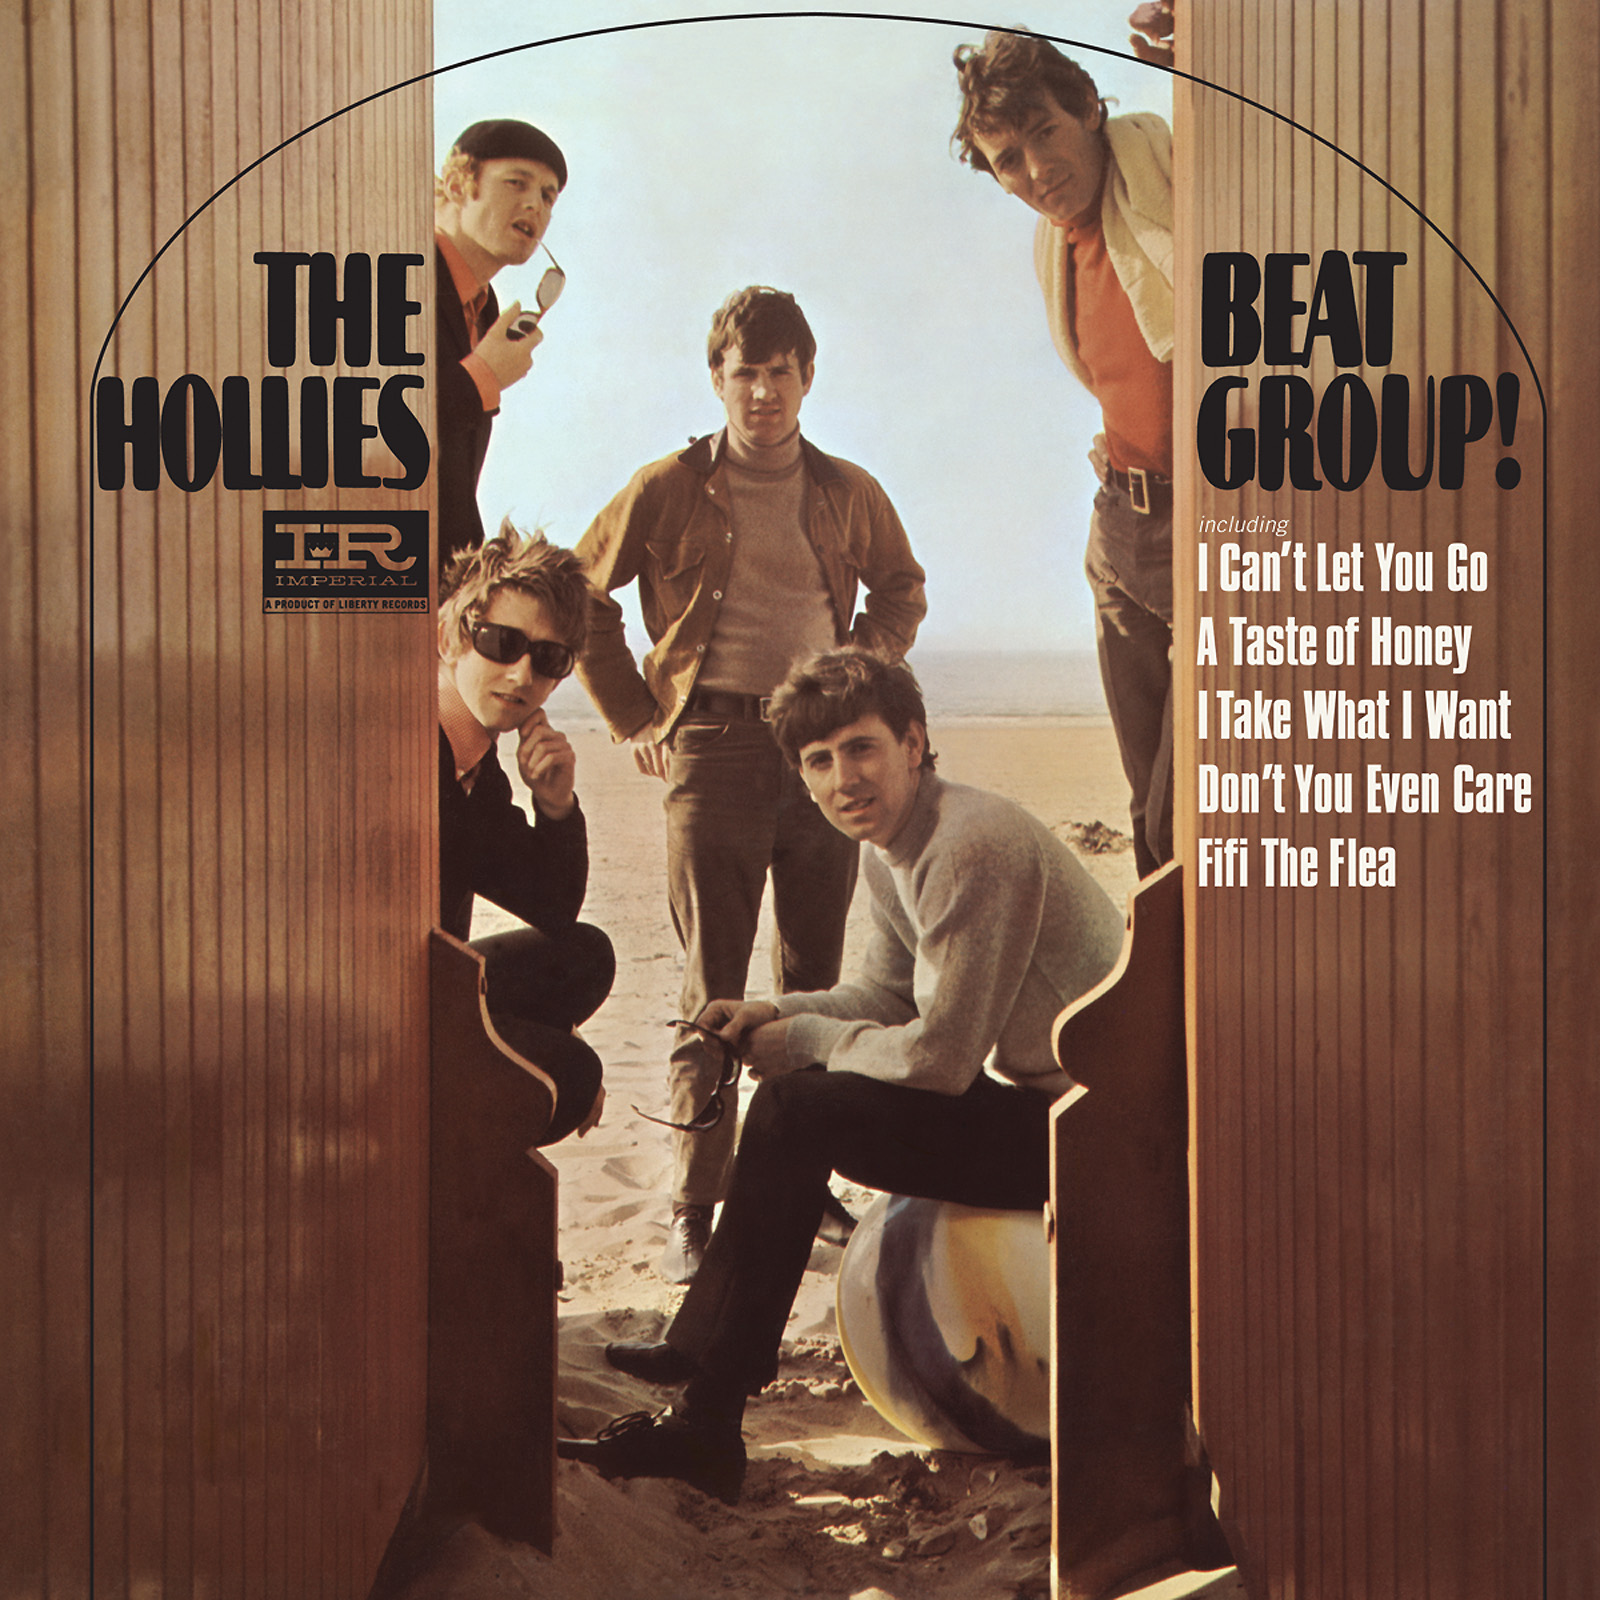 Hollies, The - Beat Group! MONO Edition LP